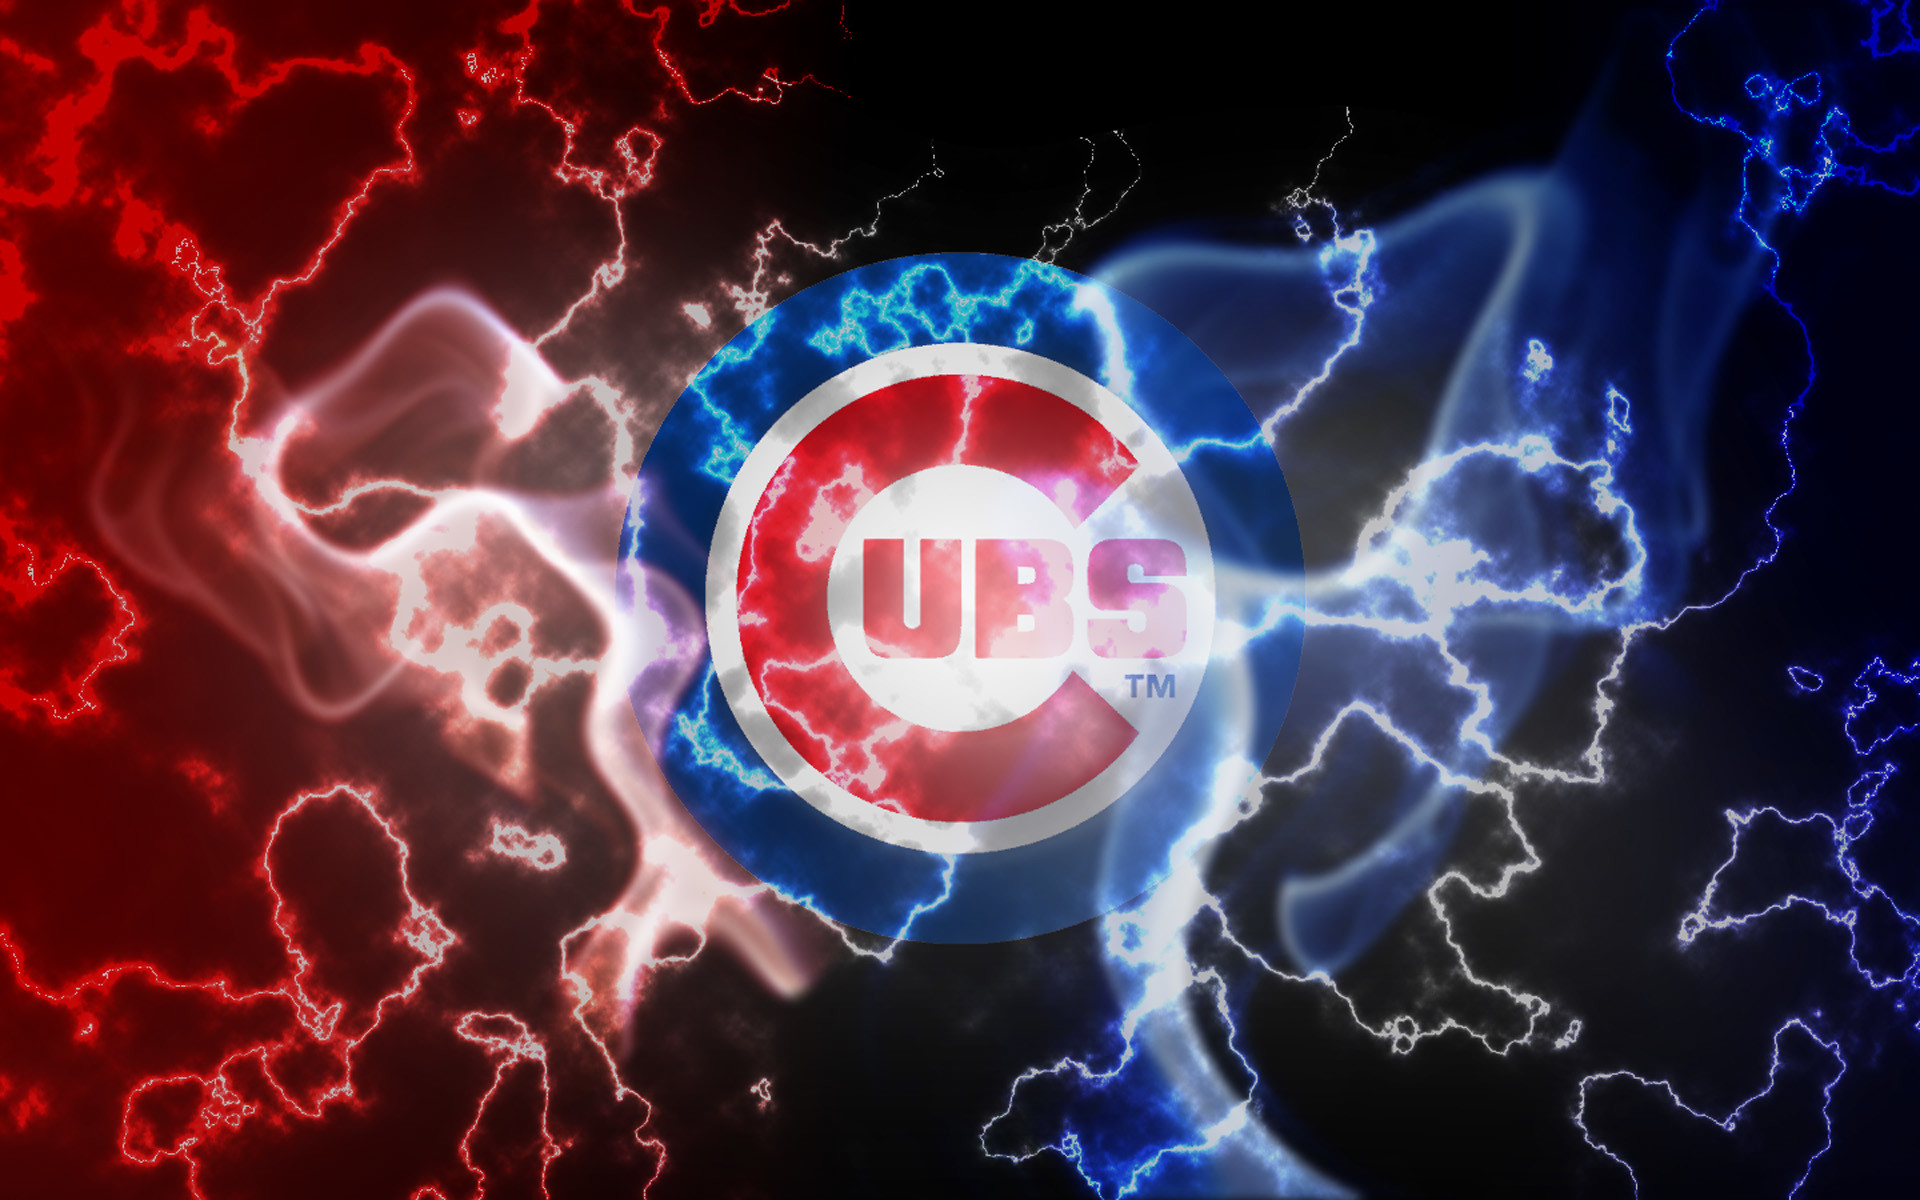 Chicago Cubs Wallpaper Hd: Chicago Cubs Screensavers And Wallpaper (66+ Images